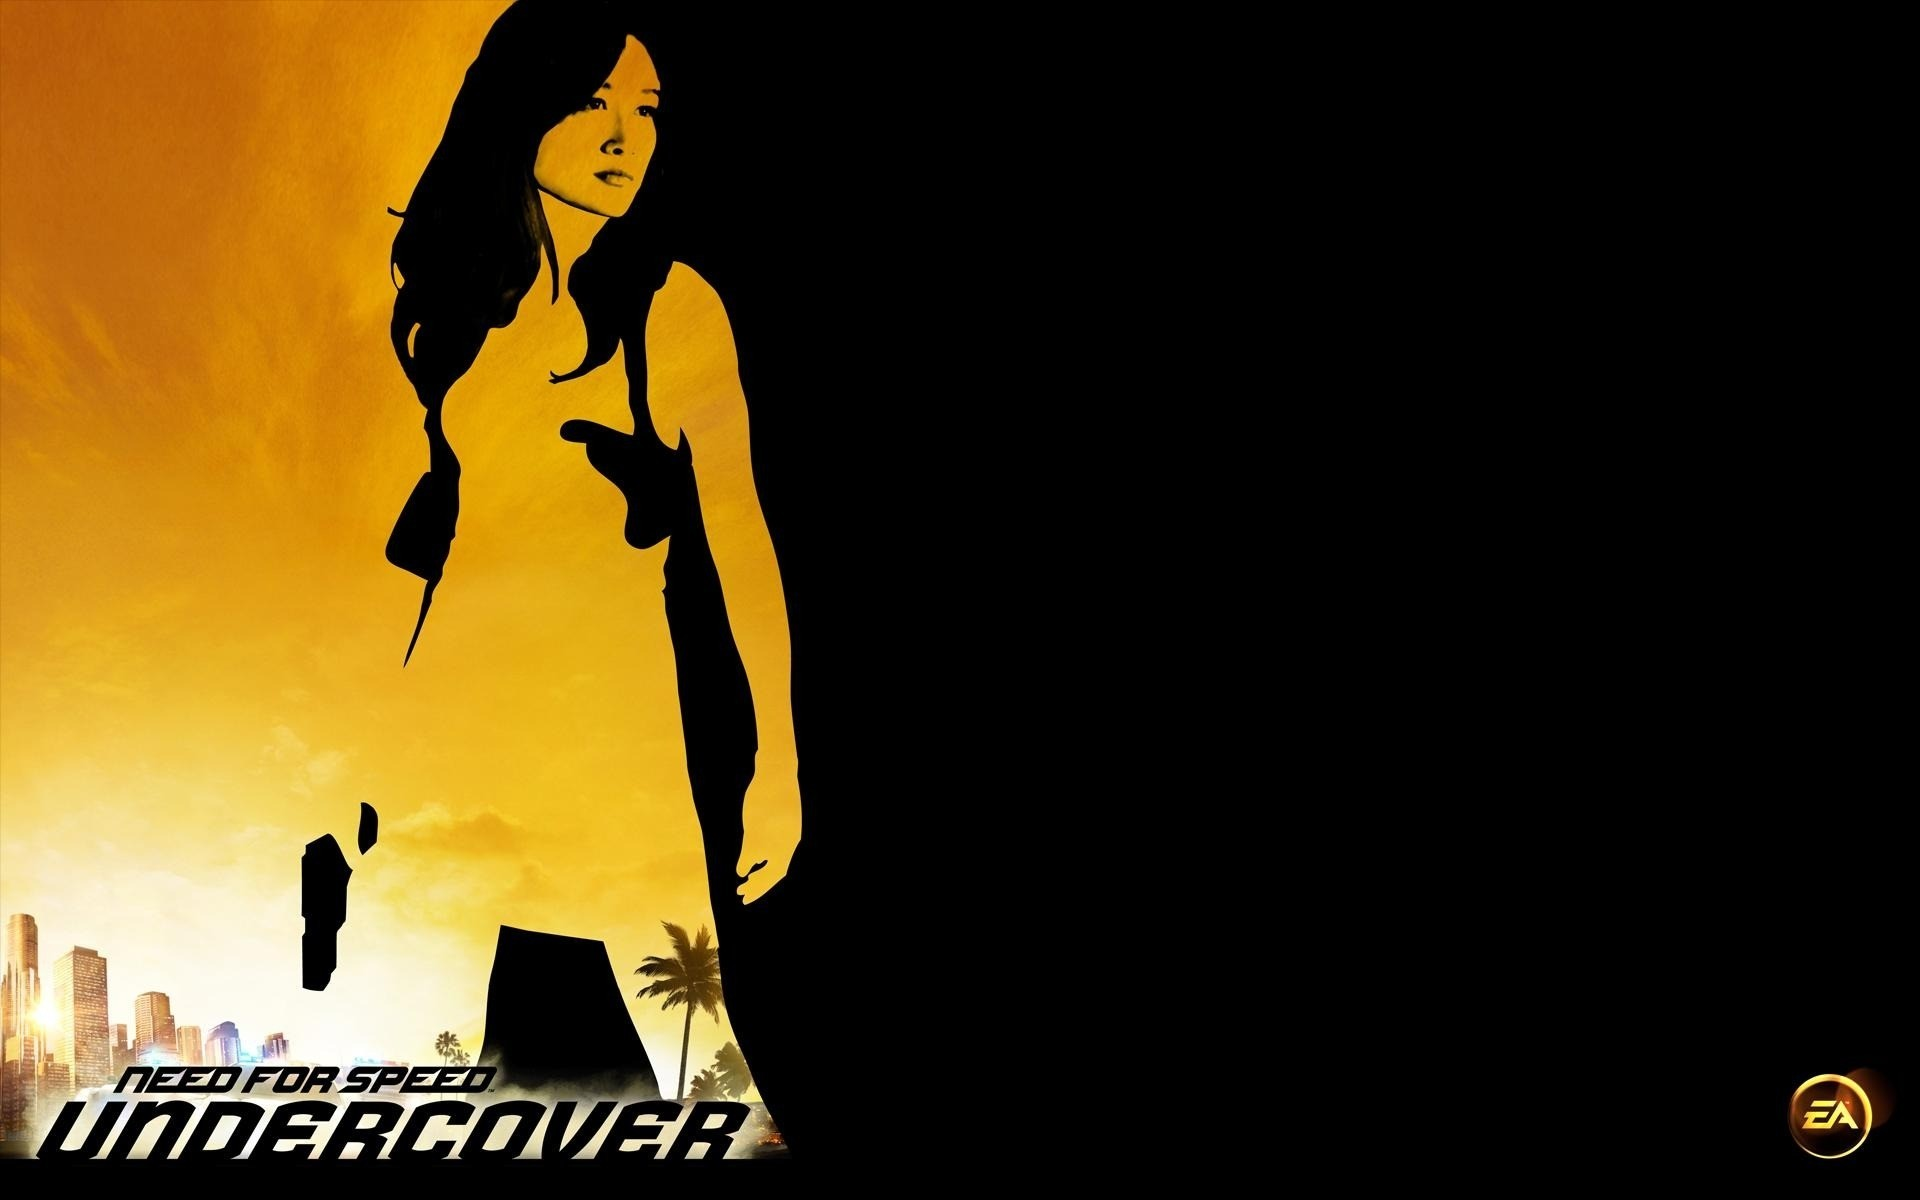 Nfs undercover girl  x  widescreen wallpaper